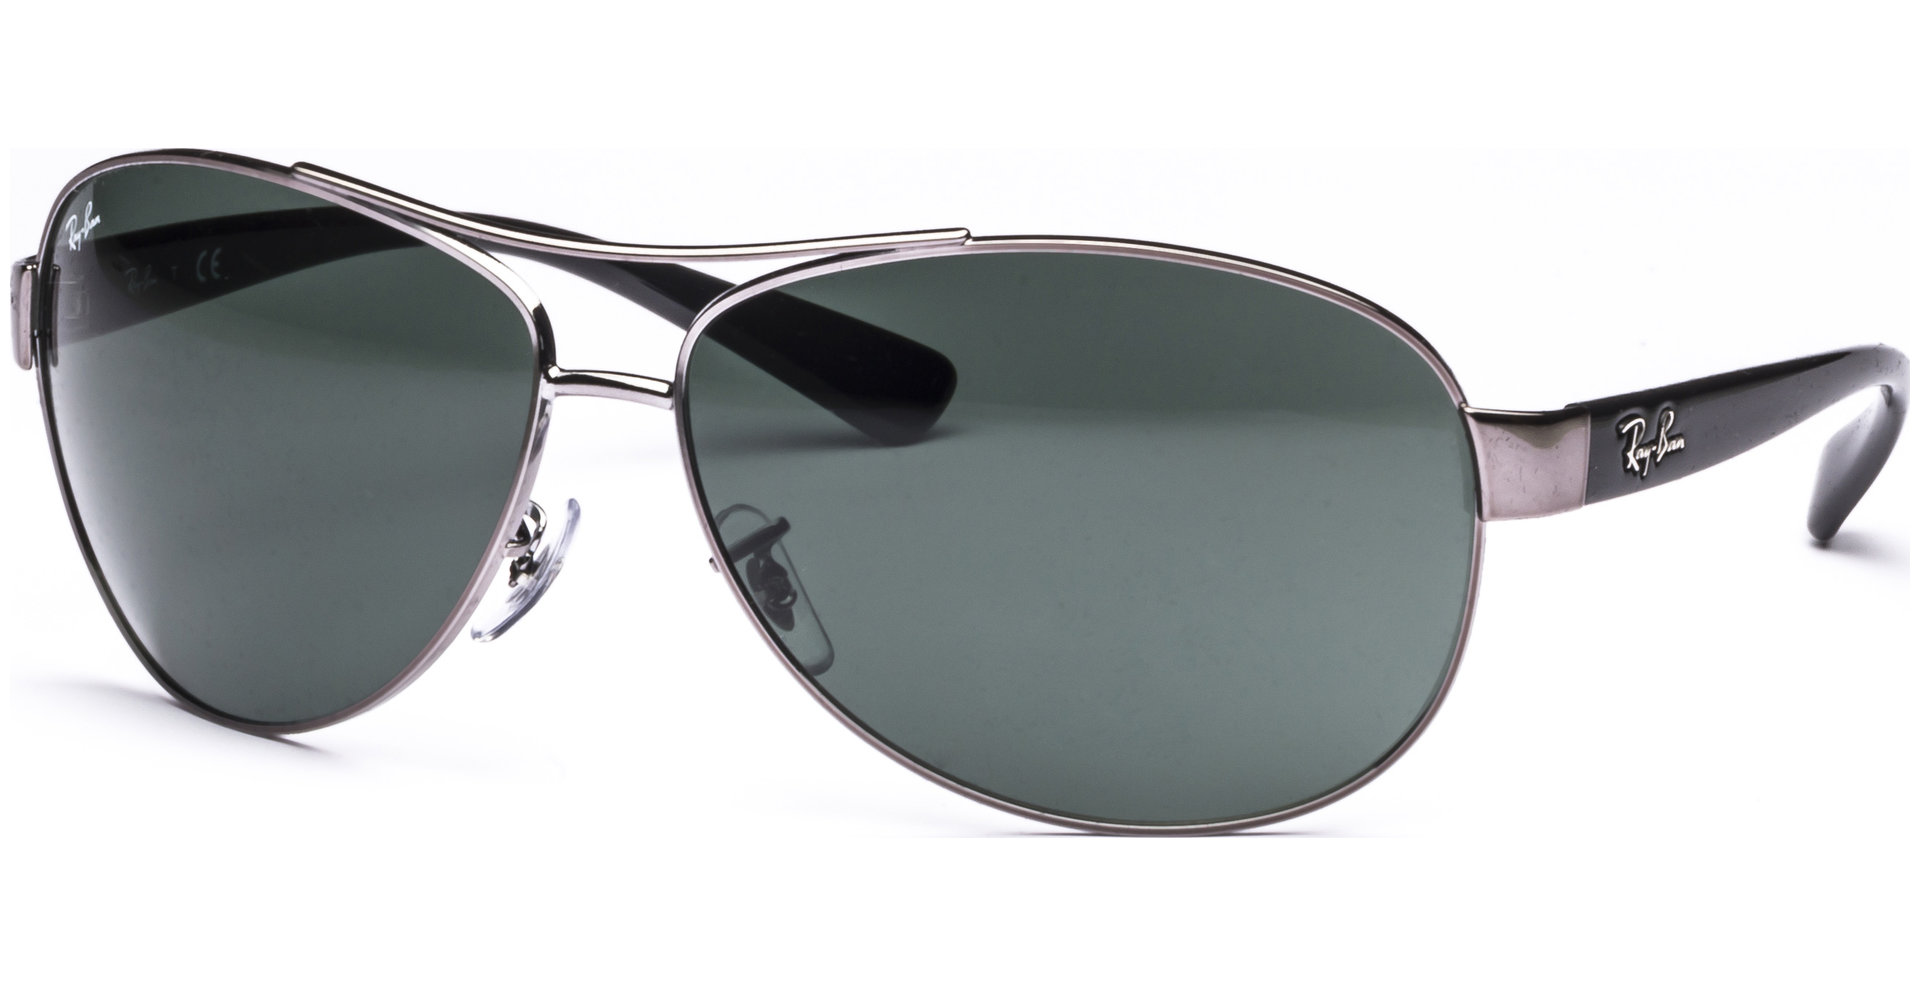 Images Ray Bans Sunglass Price In Philippines Iphone Price